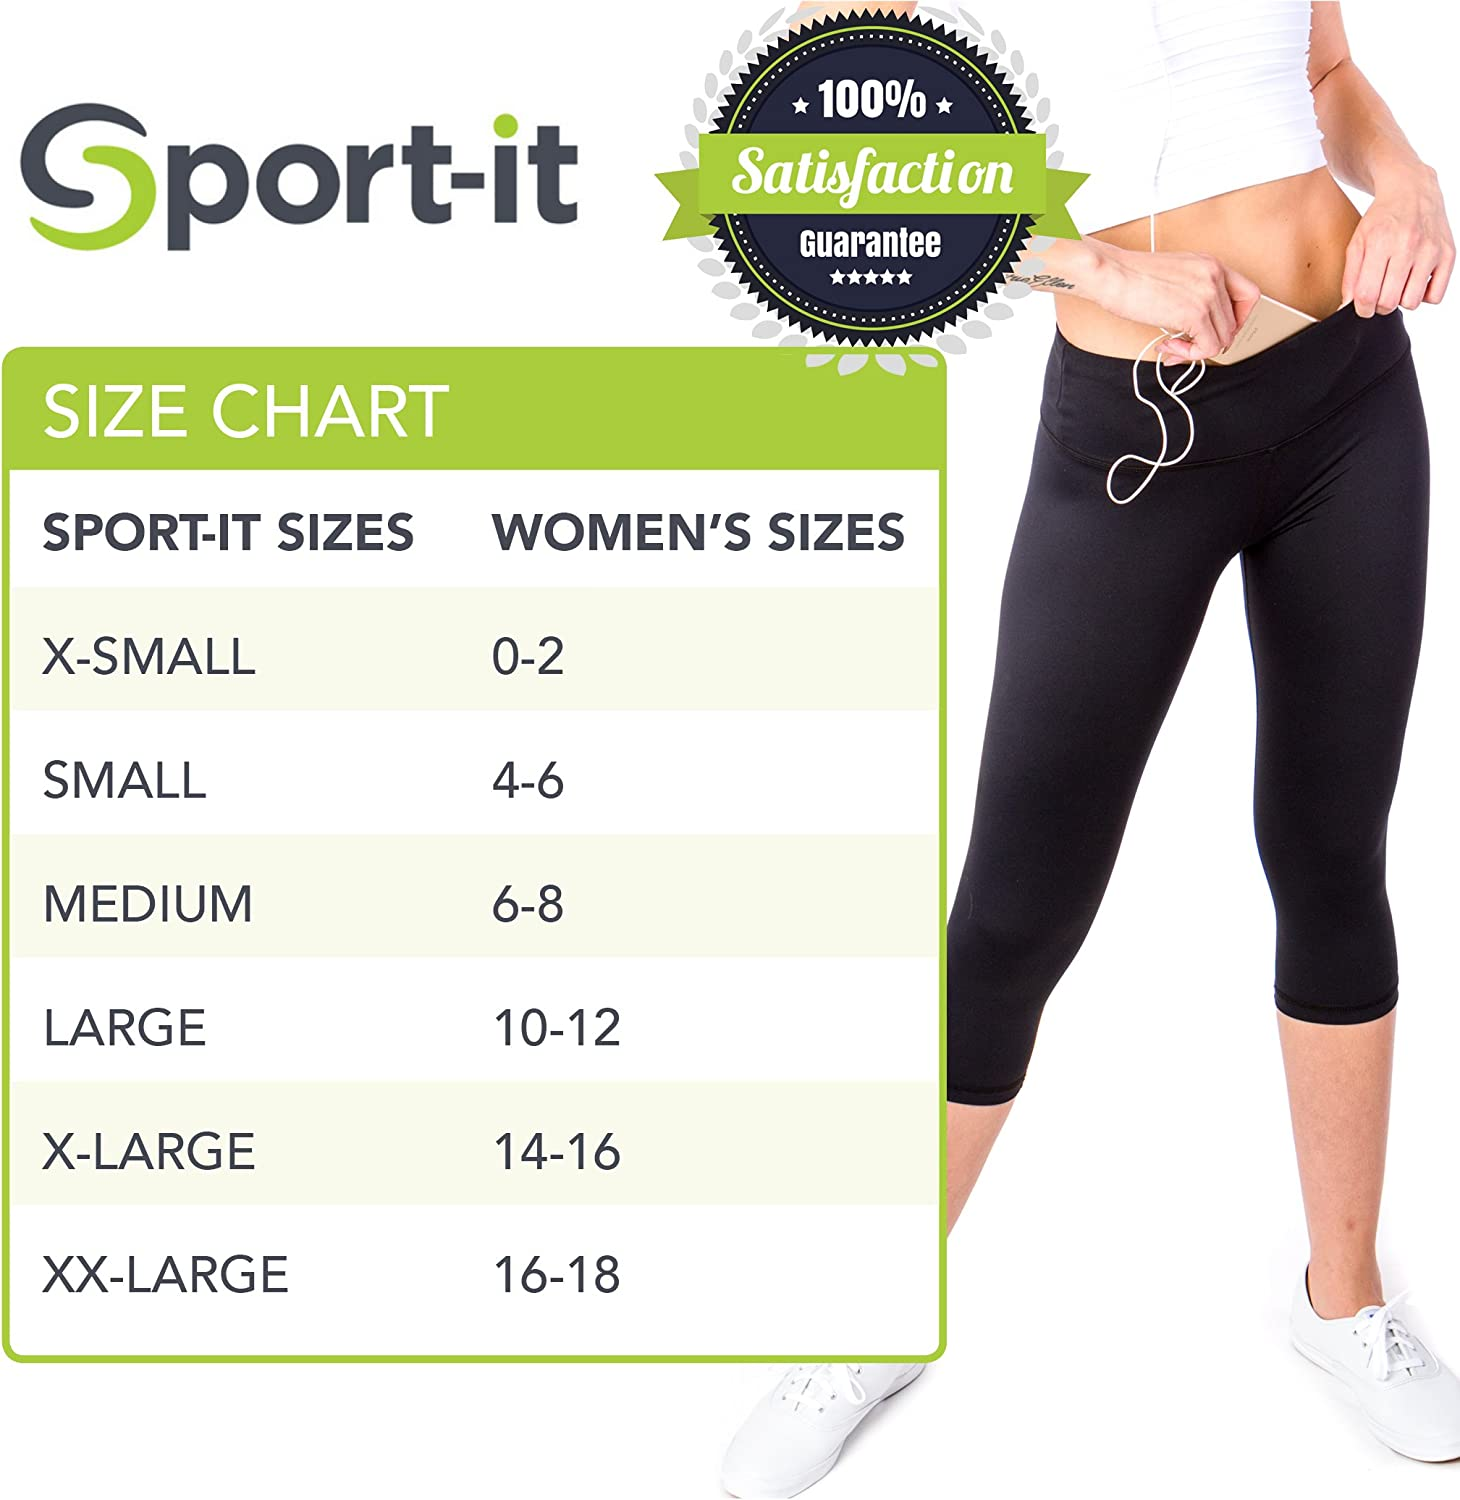 Amazon.com: Sport-it Yoga Capri Leggings con bolsillos y ...